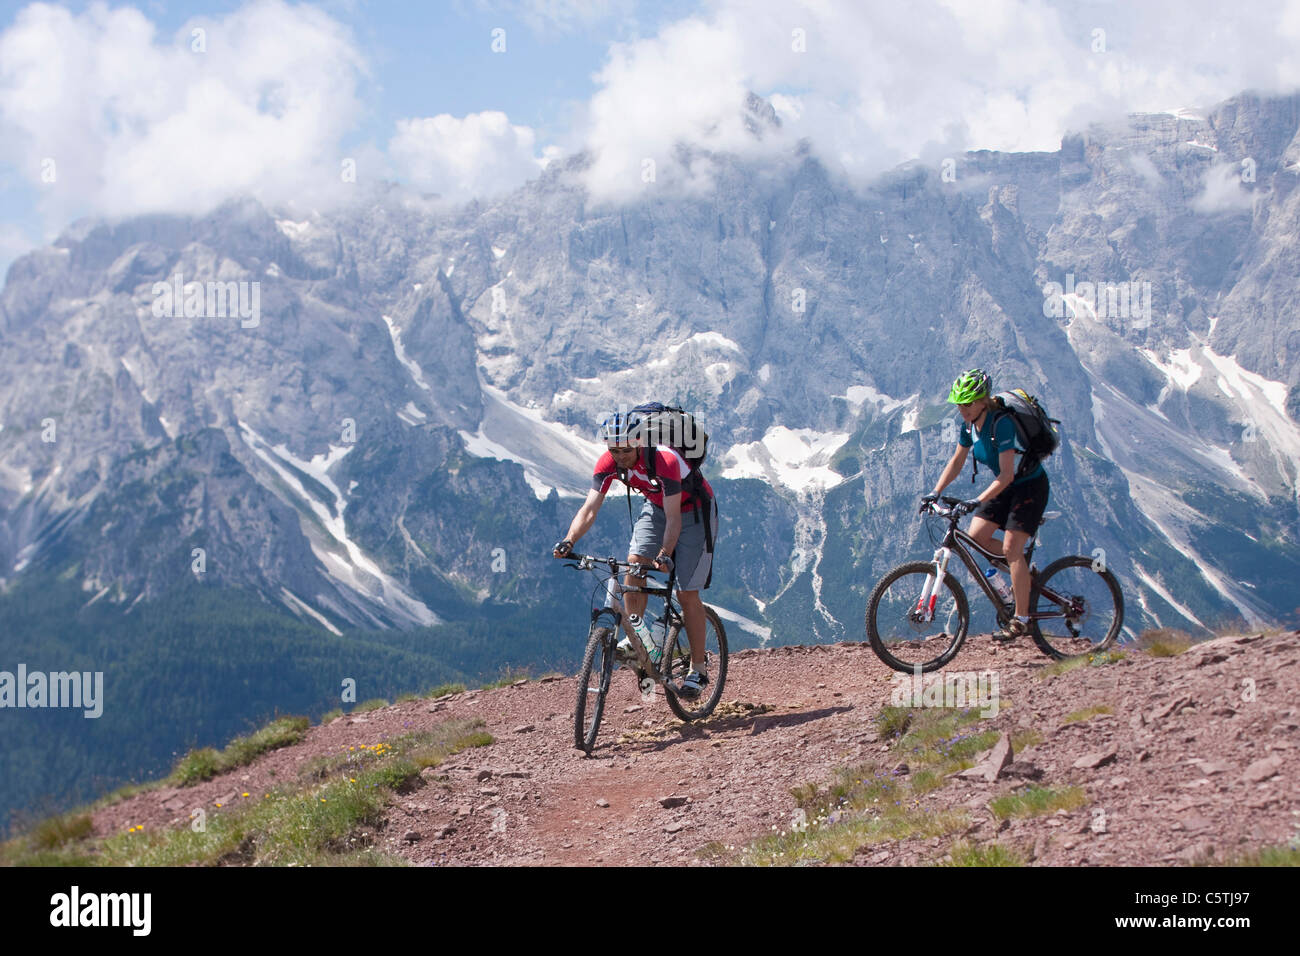 Italy, Dolomites, Couple mountainbiking - Stock Image